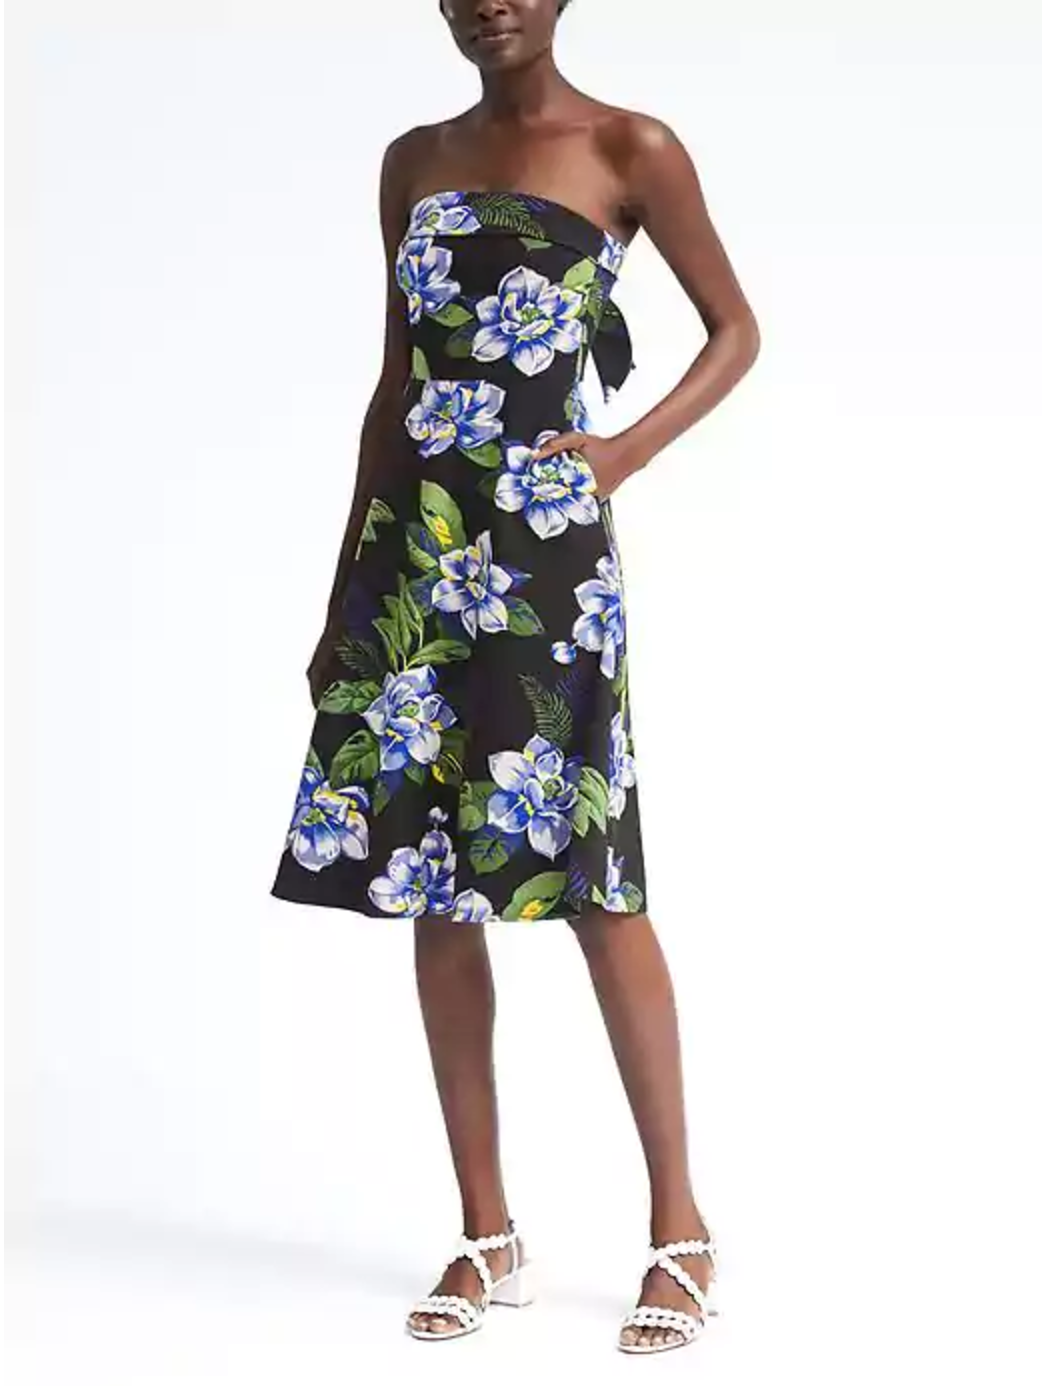 Tanger Outlets Banana Republic Factory Store strapless floral dress